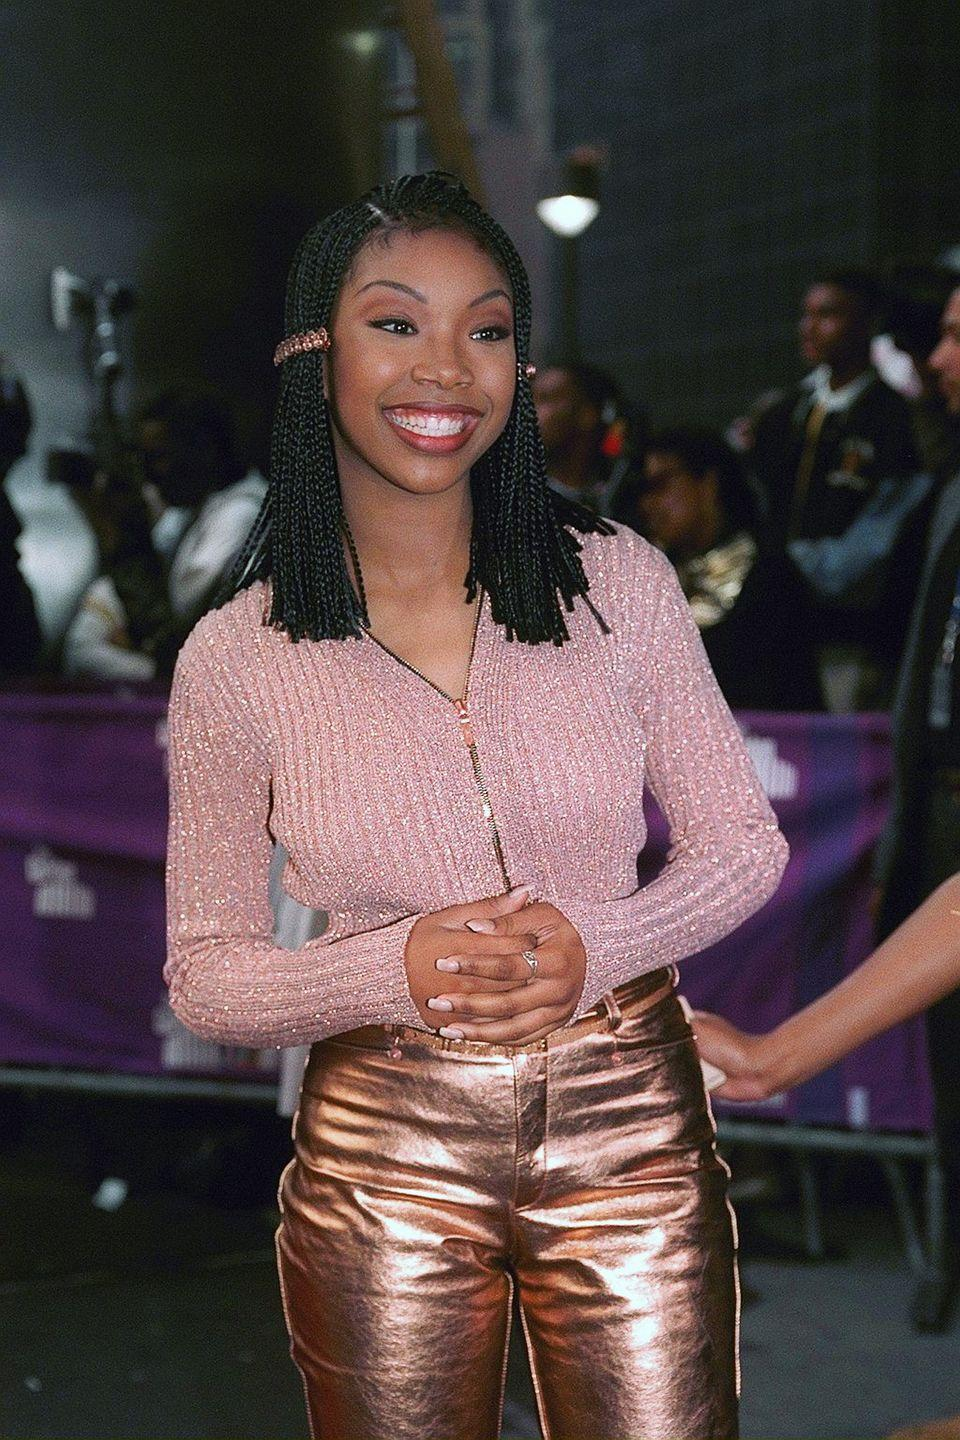 <p>Brandy Norwood dominated the '90s as both a huge music star and an actress. Her self-titled album, <em>Brandy</em>, was as big hit, and she also had starring roles in the show <em>Moesha</em> and an adaptation of <em>Cinderella</em>. She continued to put out new music throughout the decade. </p>